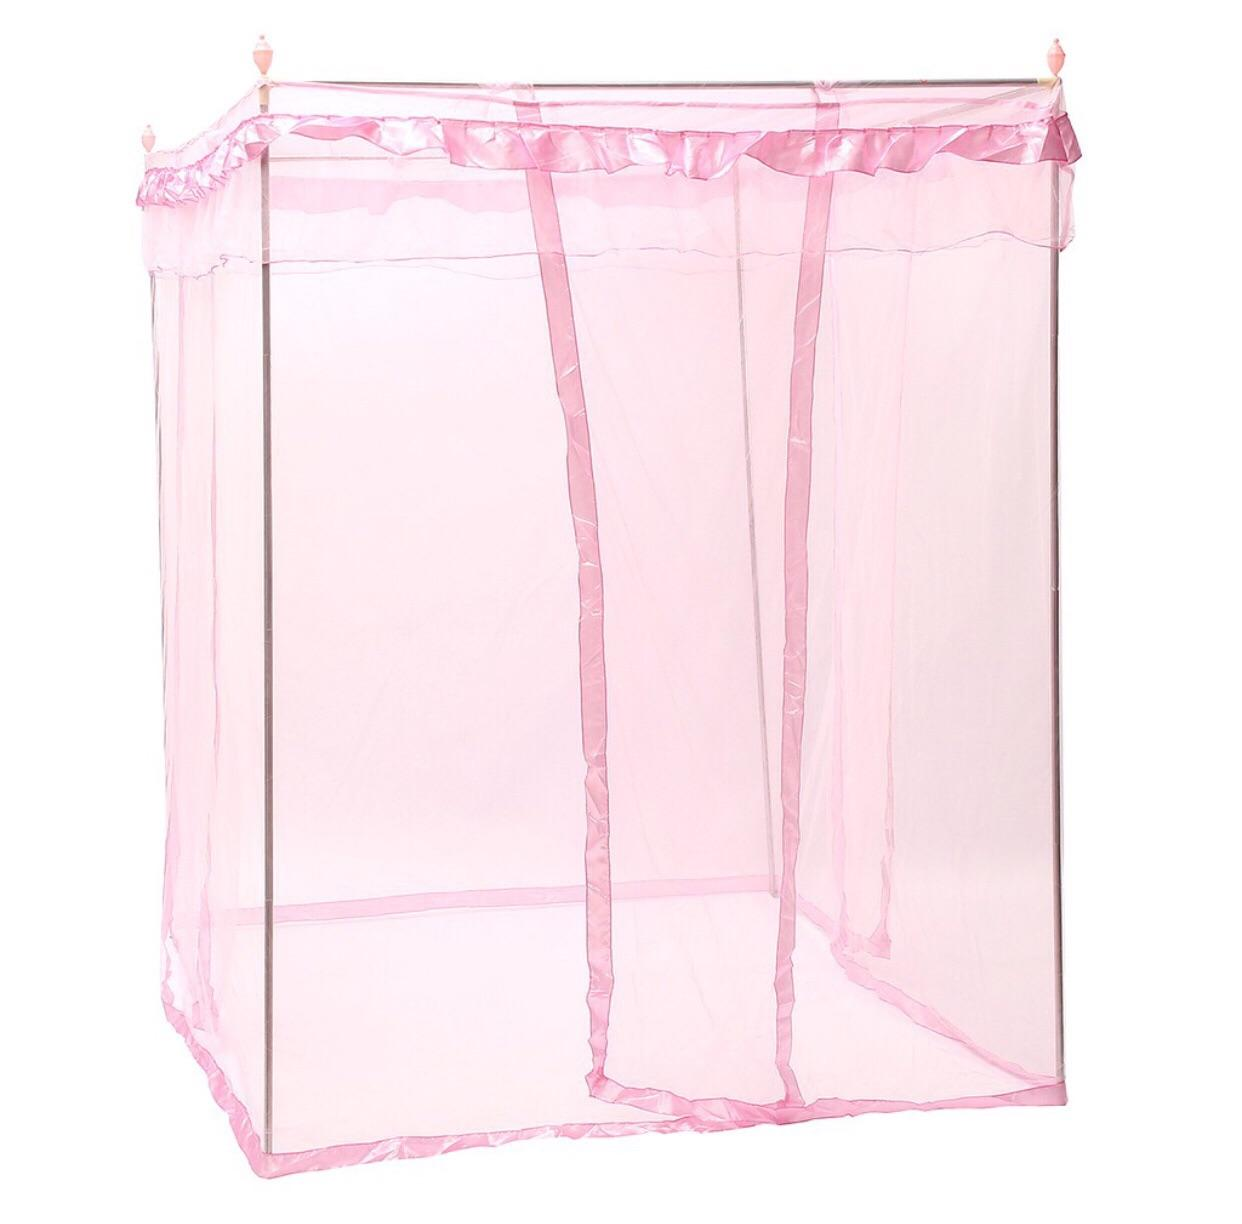 Mosquito net with metal bar - pink